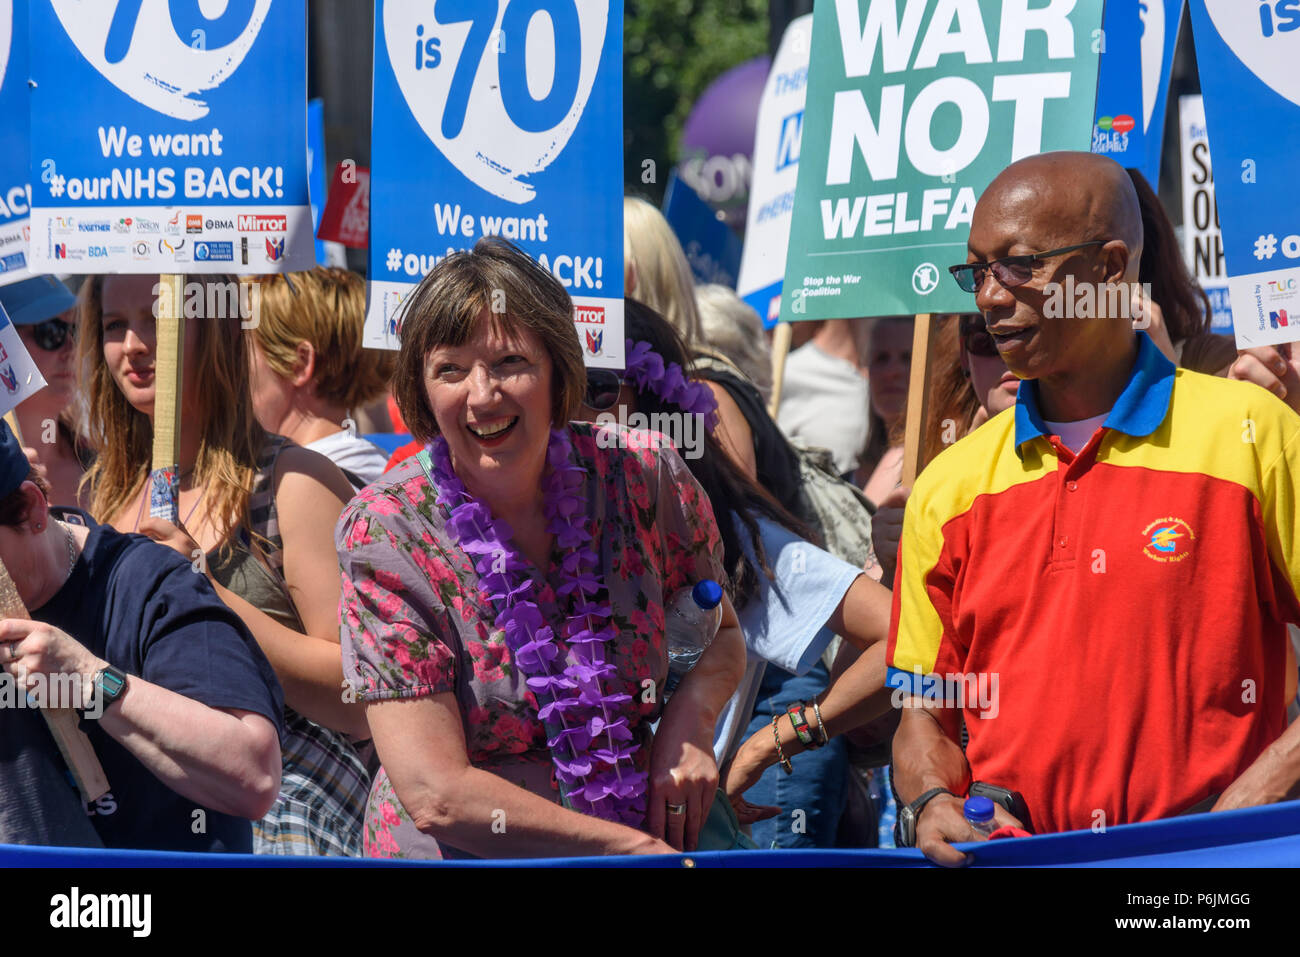 June 30, 2018 - London, UK. 30th June 2018. Frances O'Grady, TUC, General Secretary holds the main banner as the march through London from the BBC arrives at Downing St to celebrate 70 years of the NHS, and to support its dedicated workers in demanding a publicly owned NHS that is free for all with proper funding and proper staffing and providing a world class services for every community. The protest, organised by the the People's Assembly, Health Campaigns Together, Trades Union Congress, Unison, Unite, GMB, British Medical Association, Royal College of Nursing, Royal College of Midwives, - Stock Image